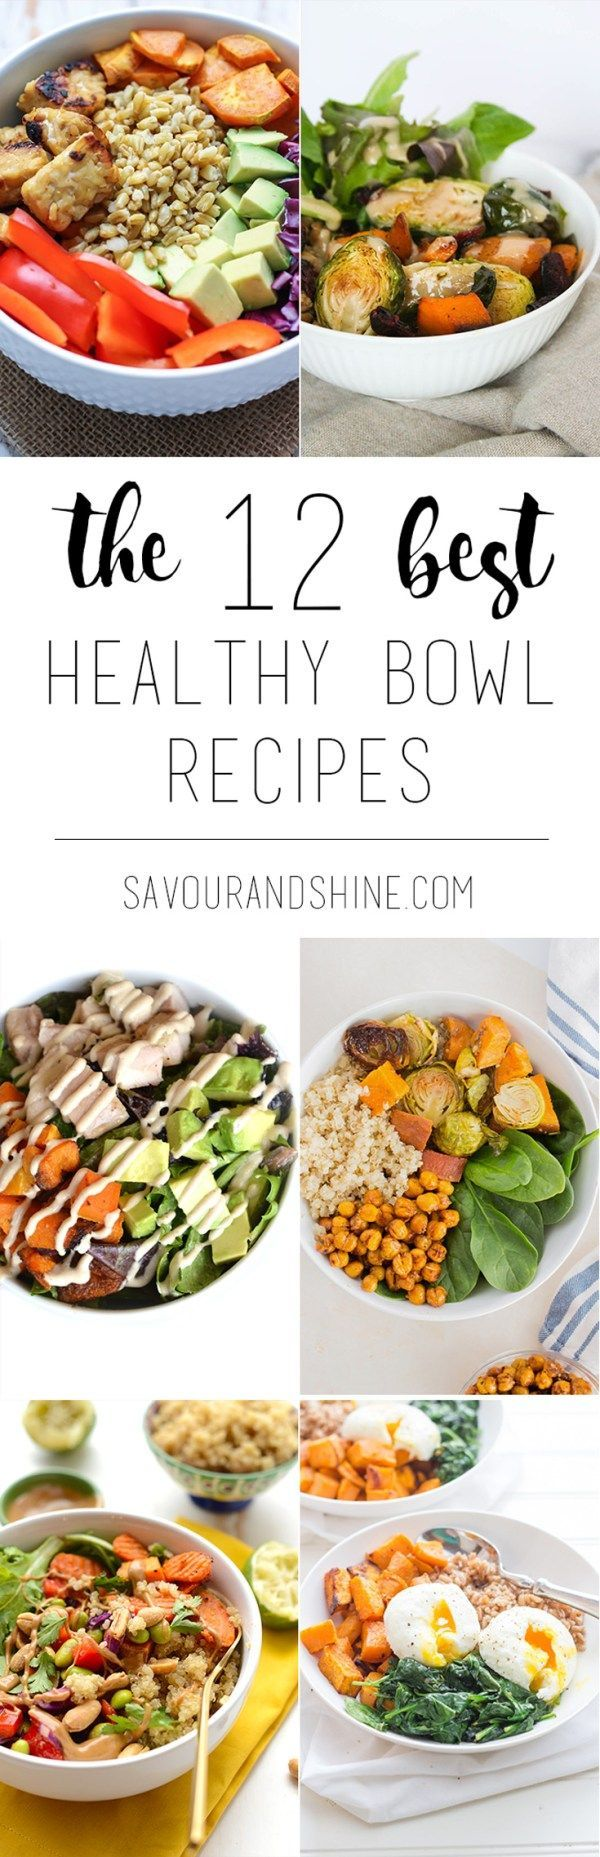 The Best Healthy Bowl Recipes // found on savourandshine.com